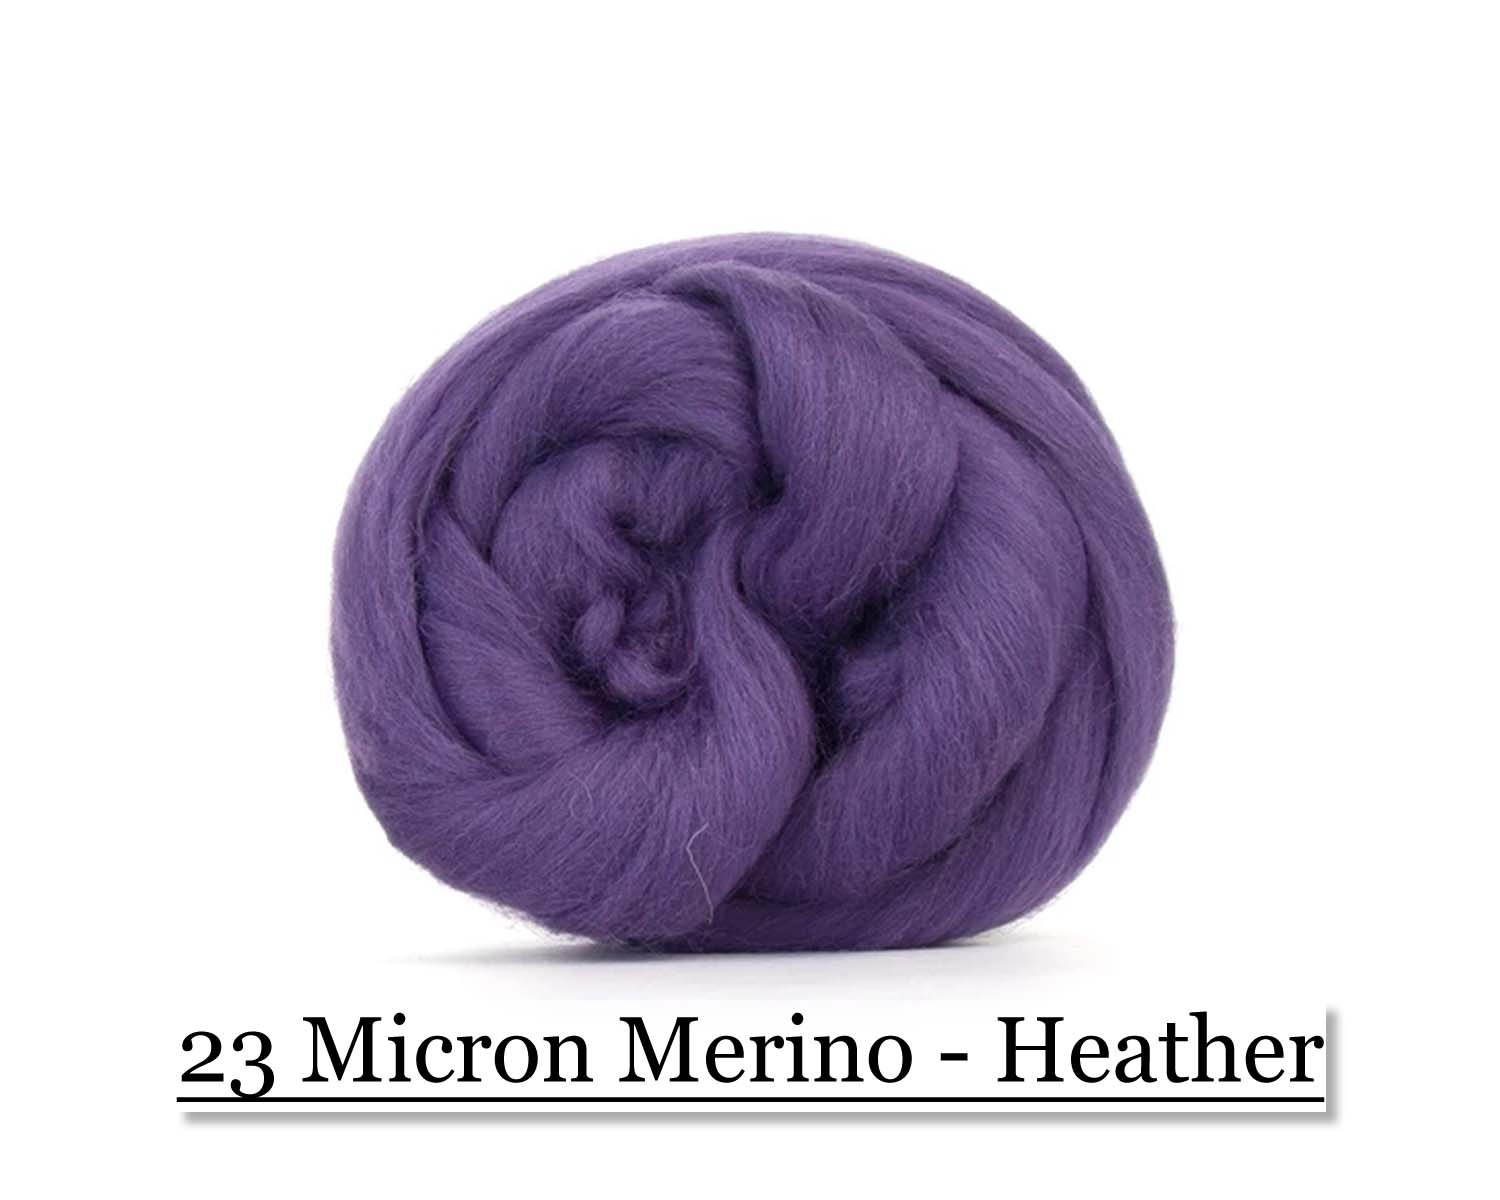 Heather -  Merino Wool Top - 23 Micron